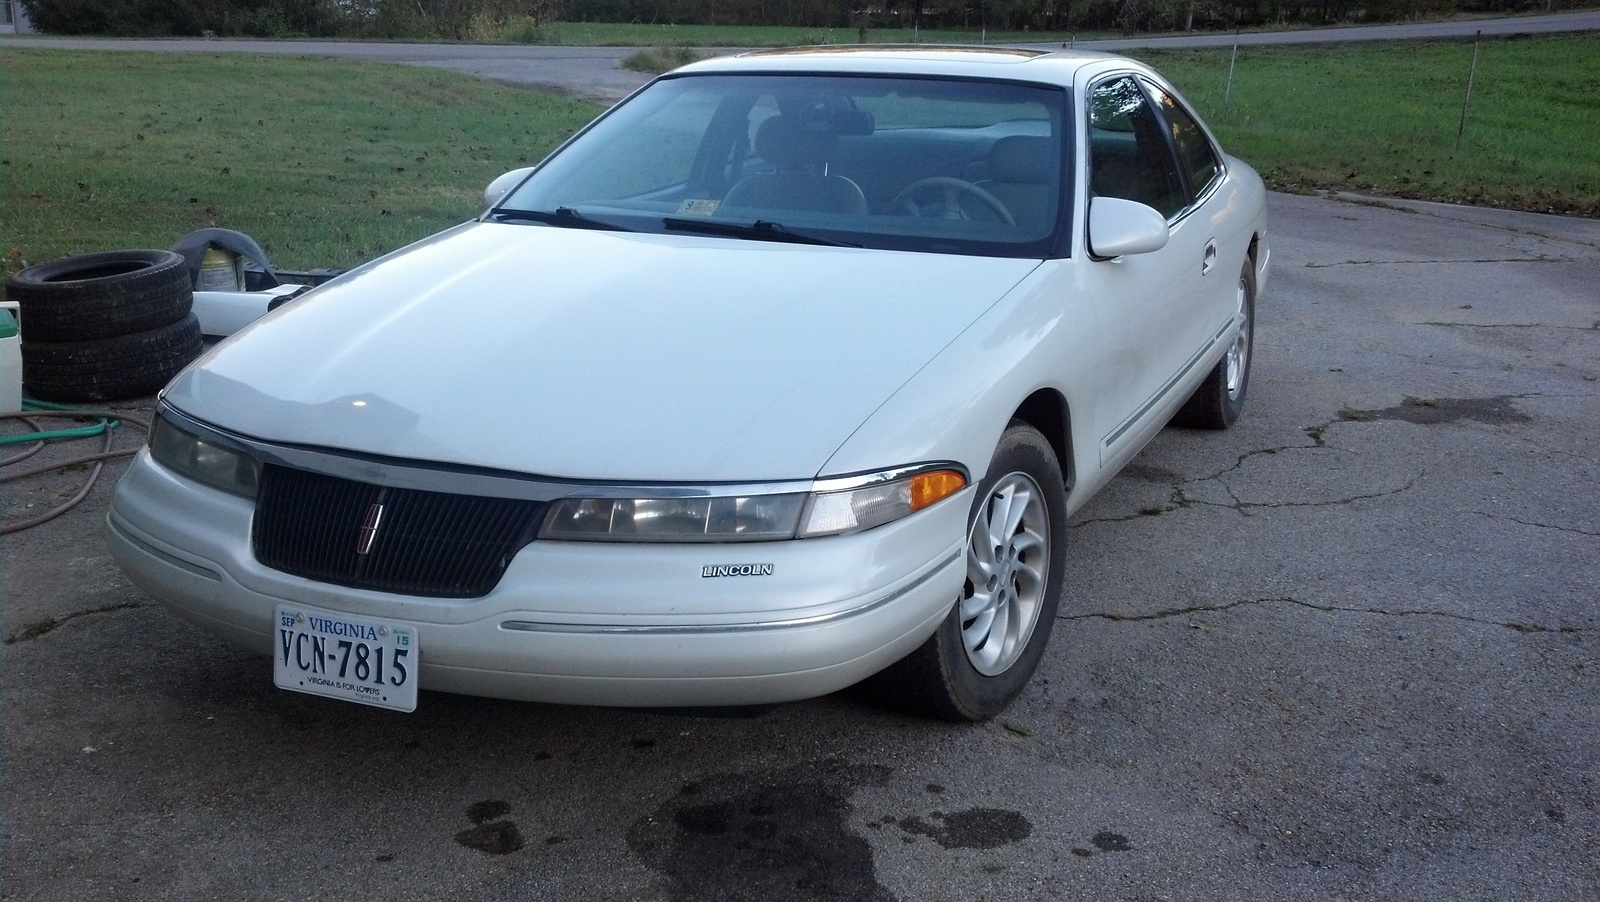 Lincoln Mark VIII Questions - My 96 Lincoln Mark VIII is overheating -  CarGurus